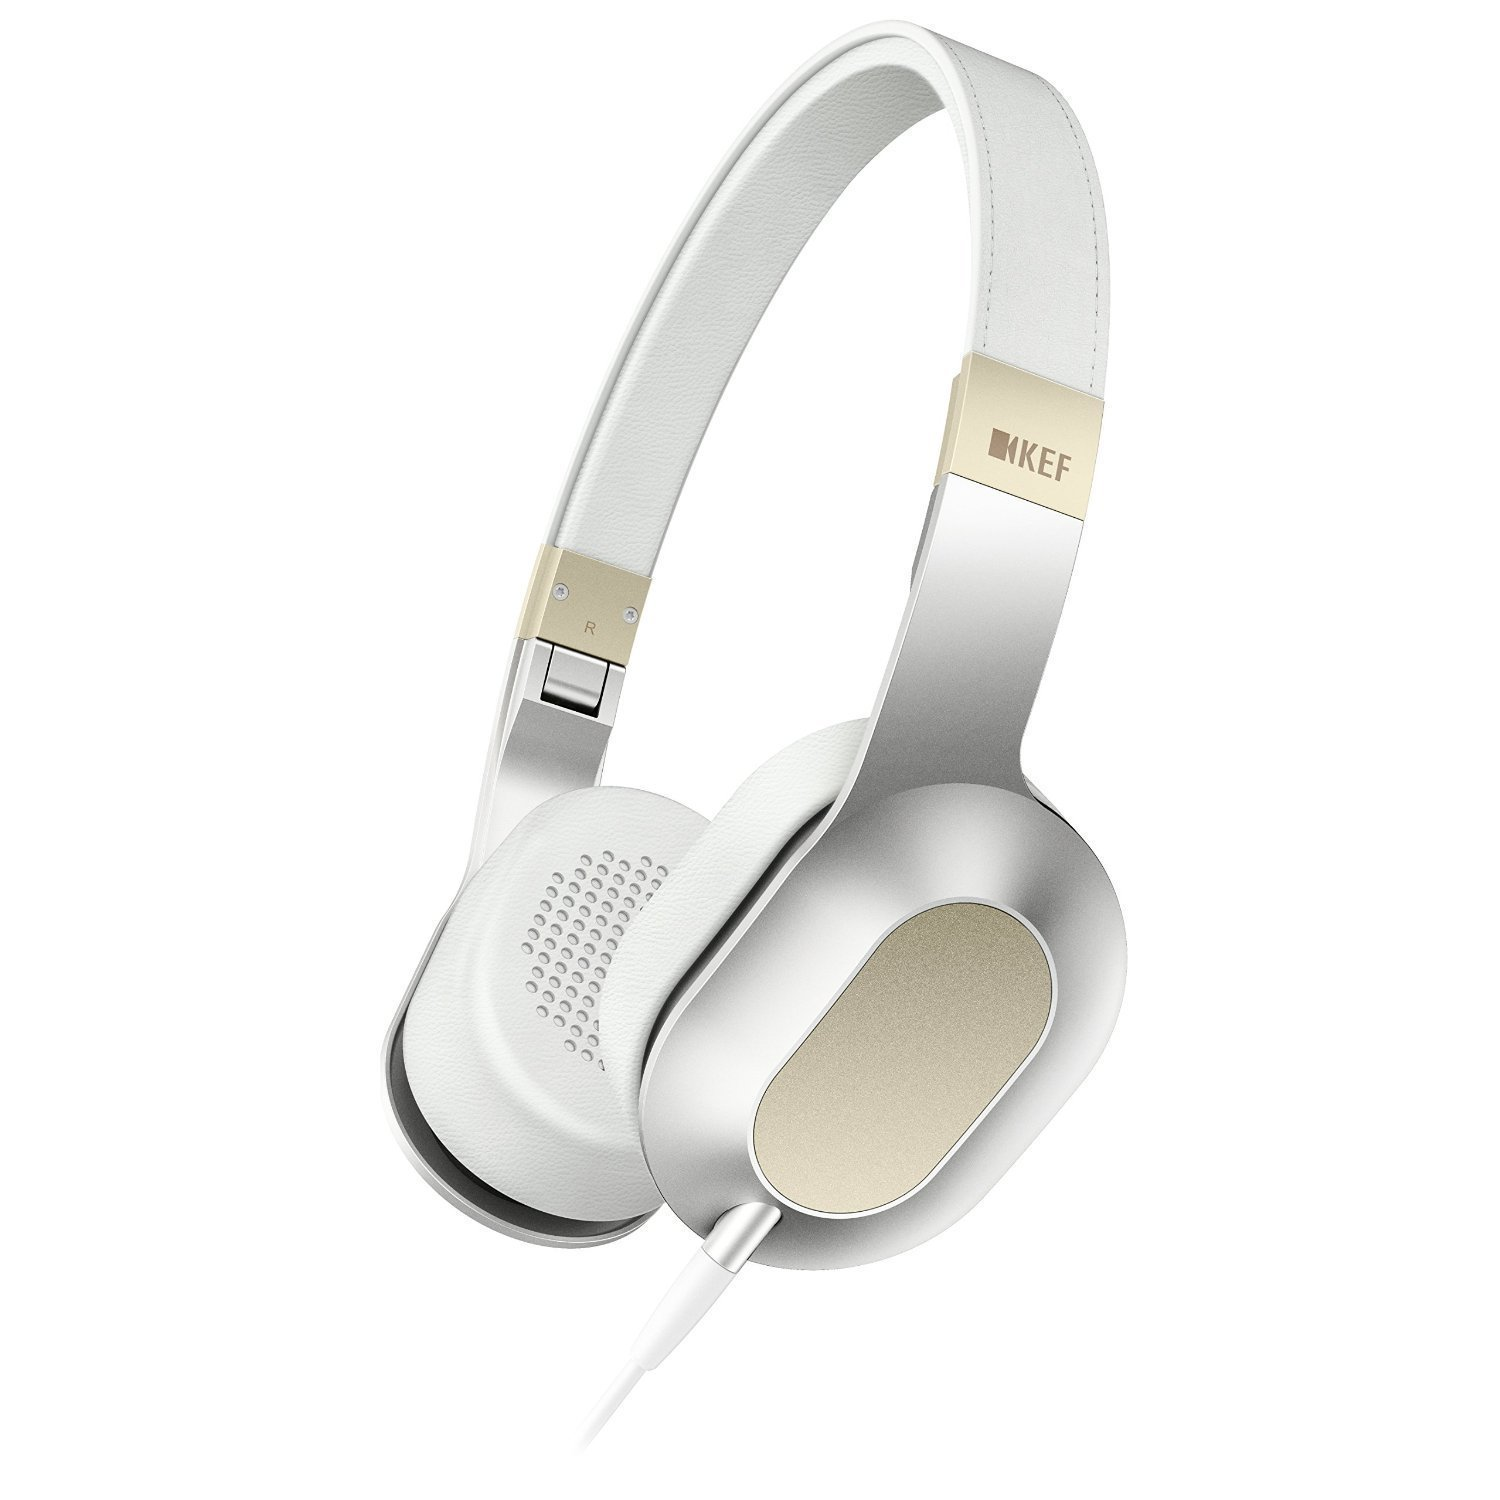 dce4661a6b5 Amazon.com: KEF M400 Hi-Fi On-Ear Headphones - Champagne White: Home Audio  & Theater